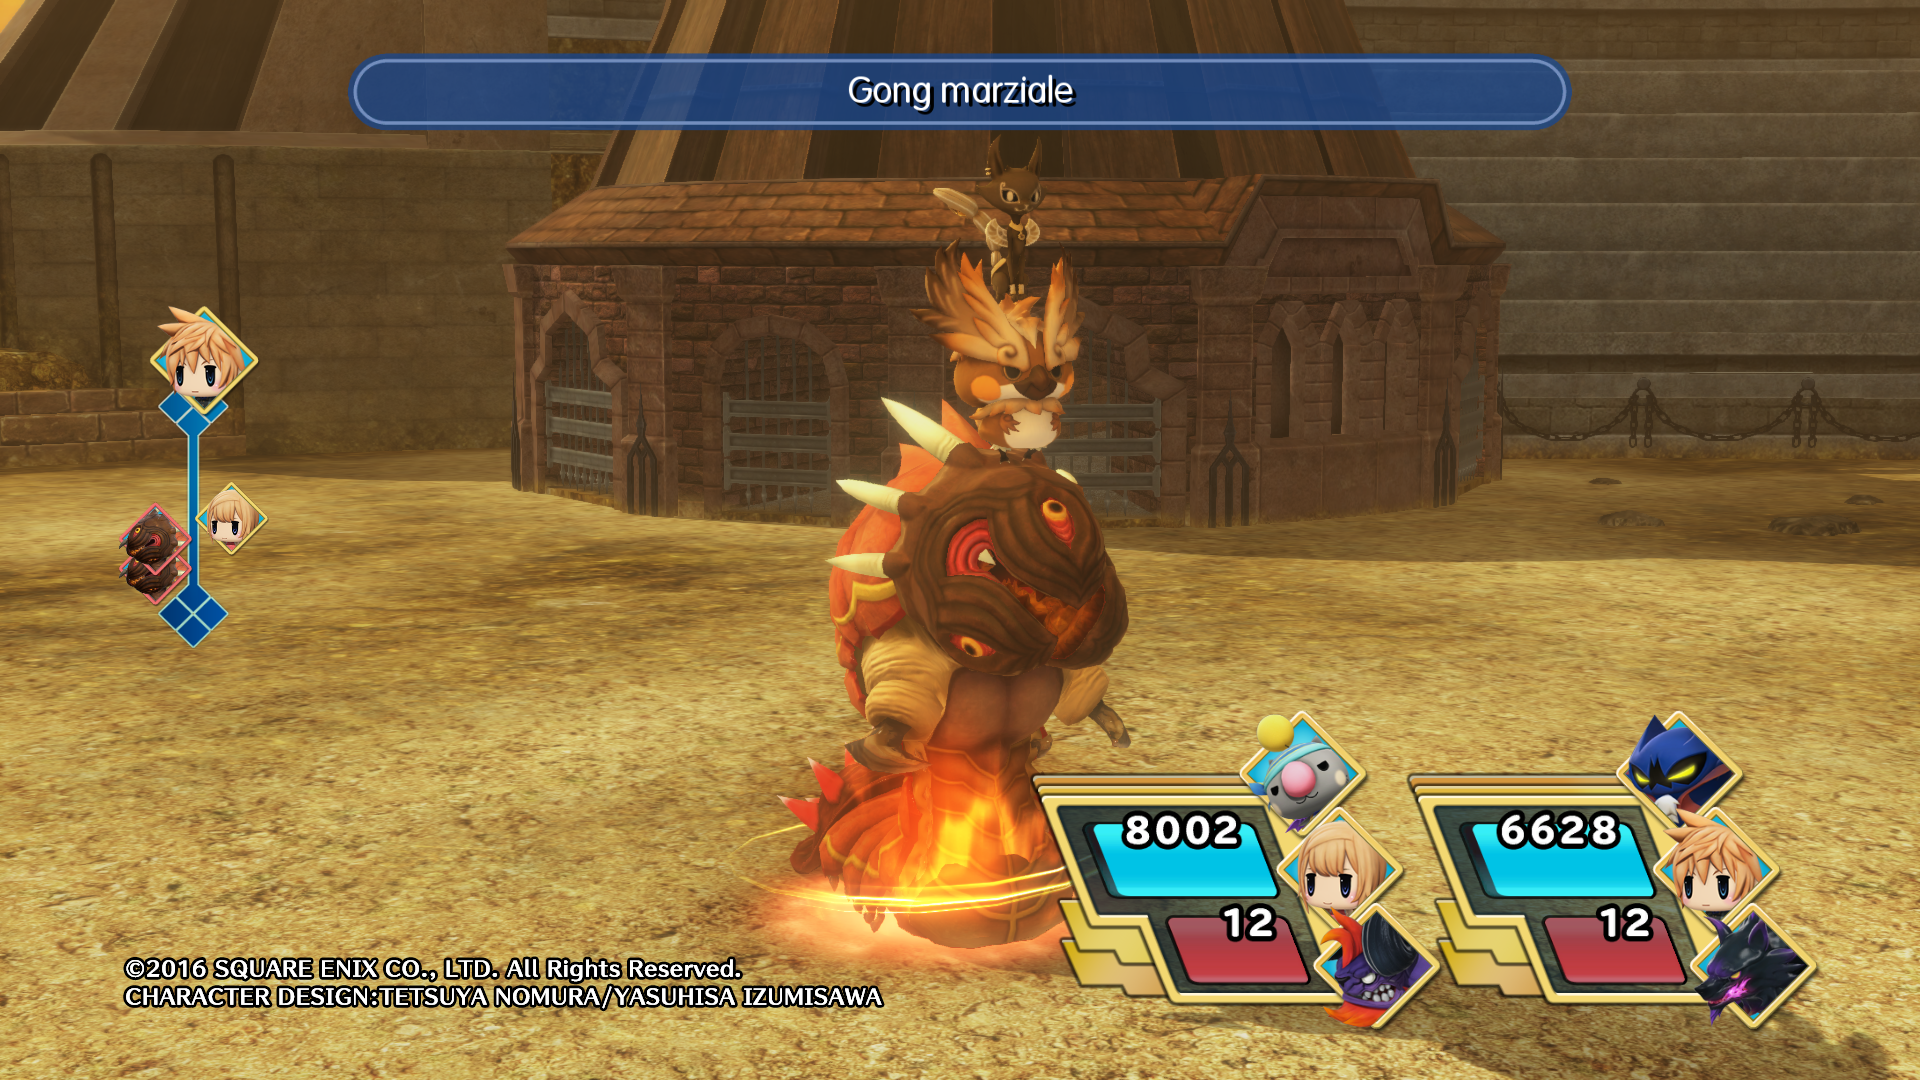 world-of-final-fantasy-guida-chocolatte-screenshot-06